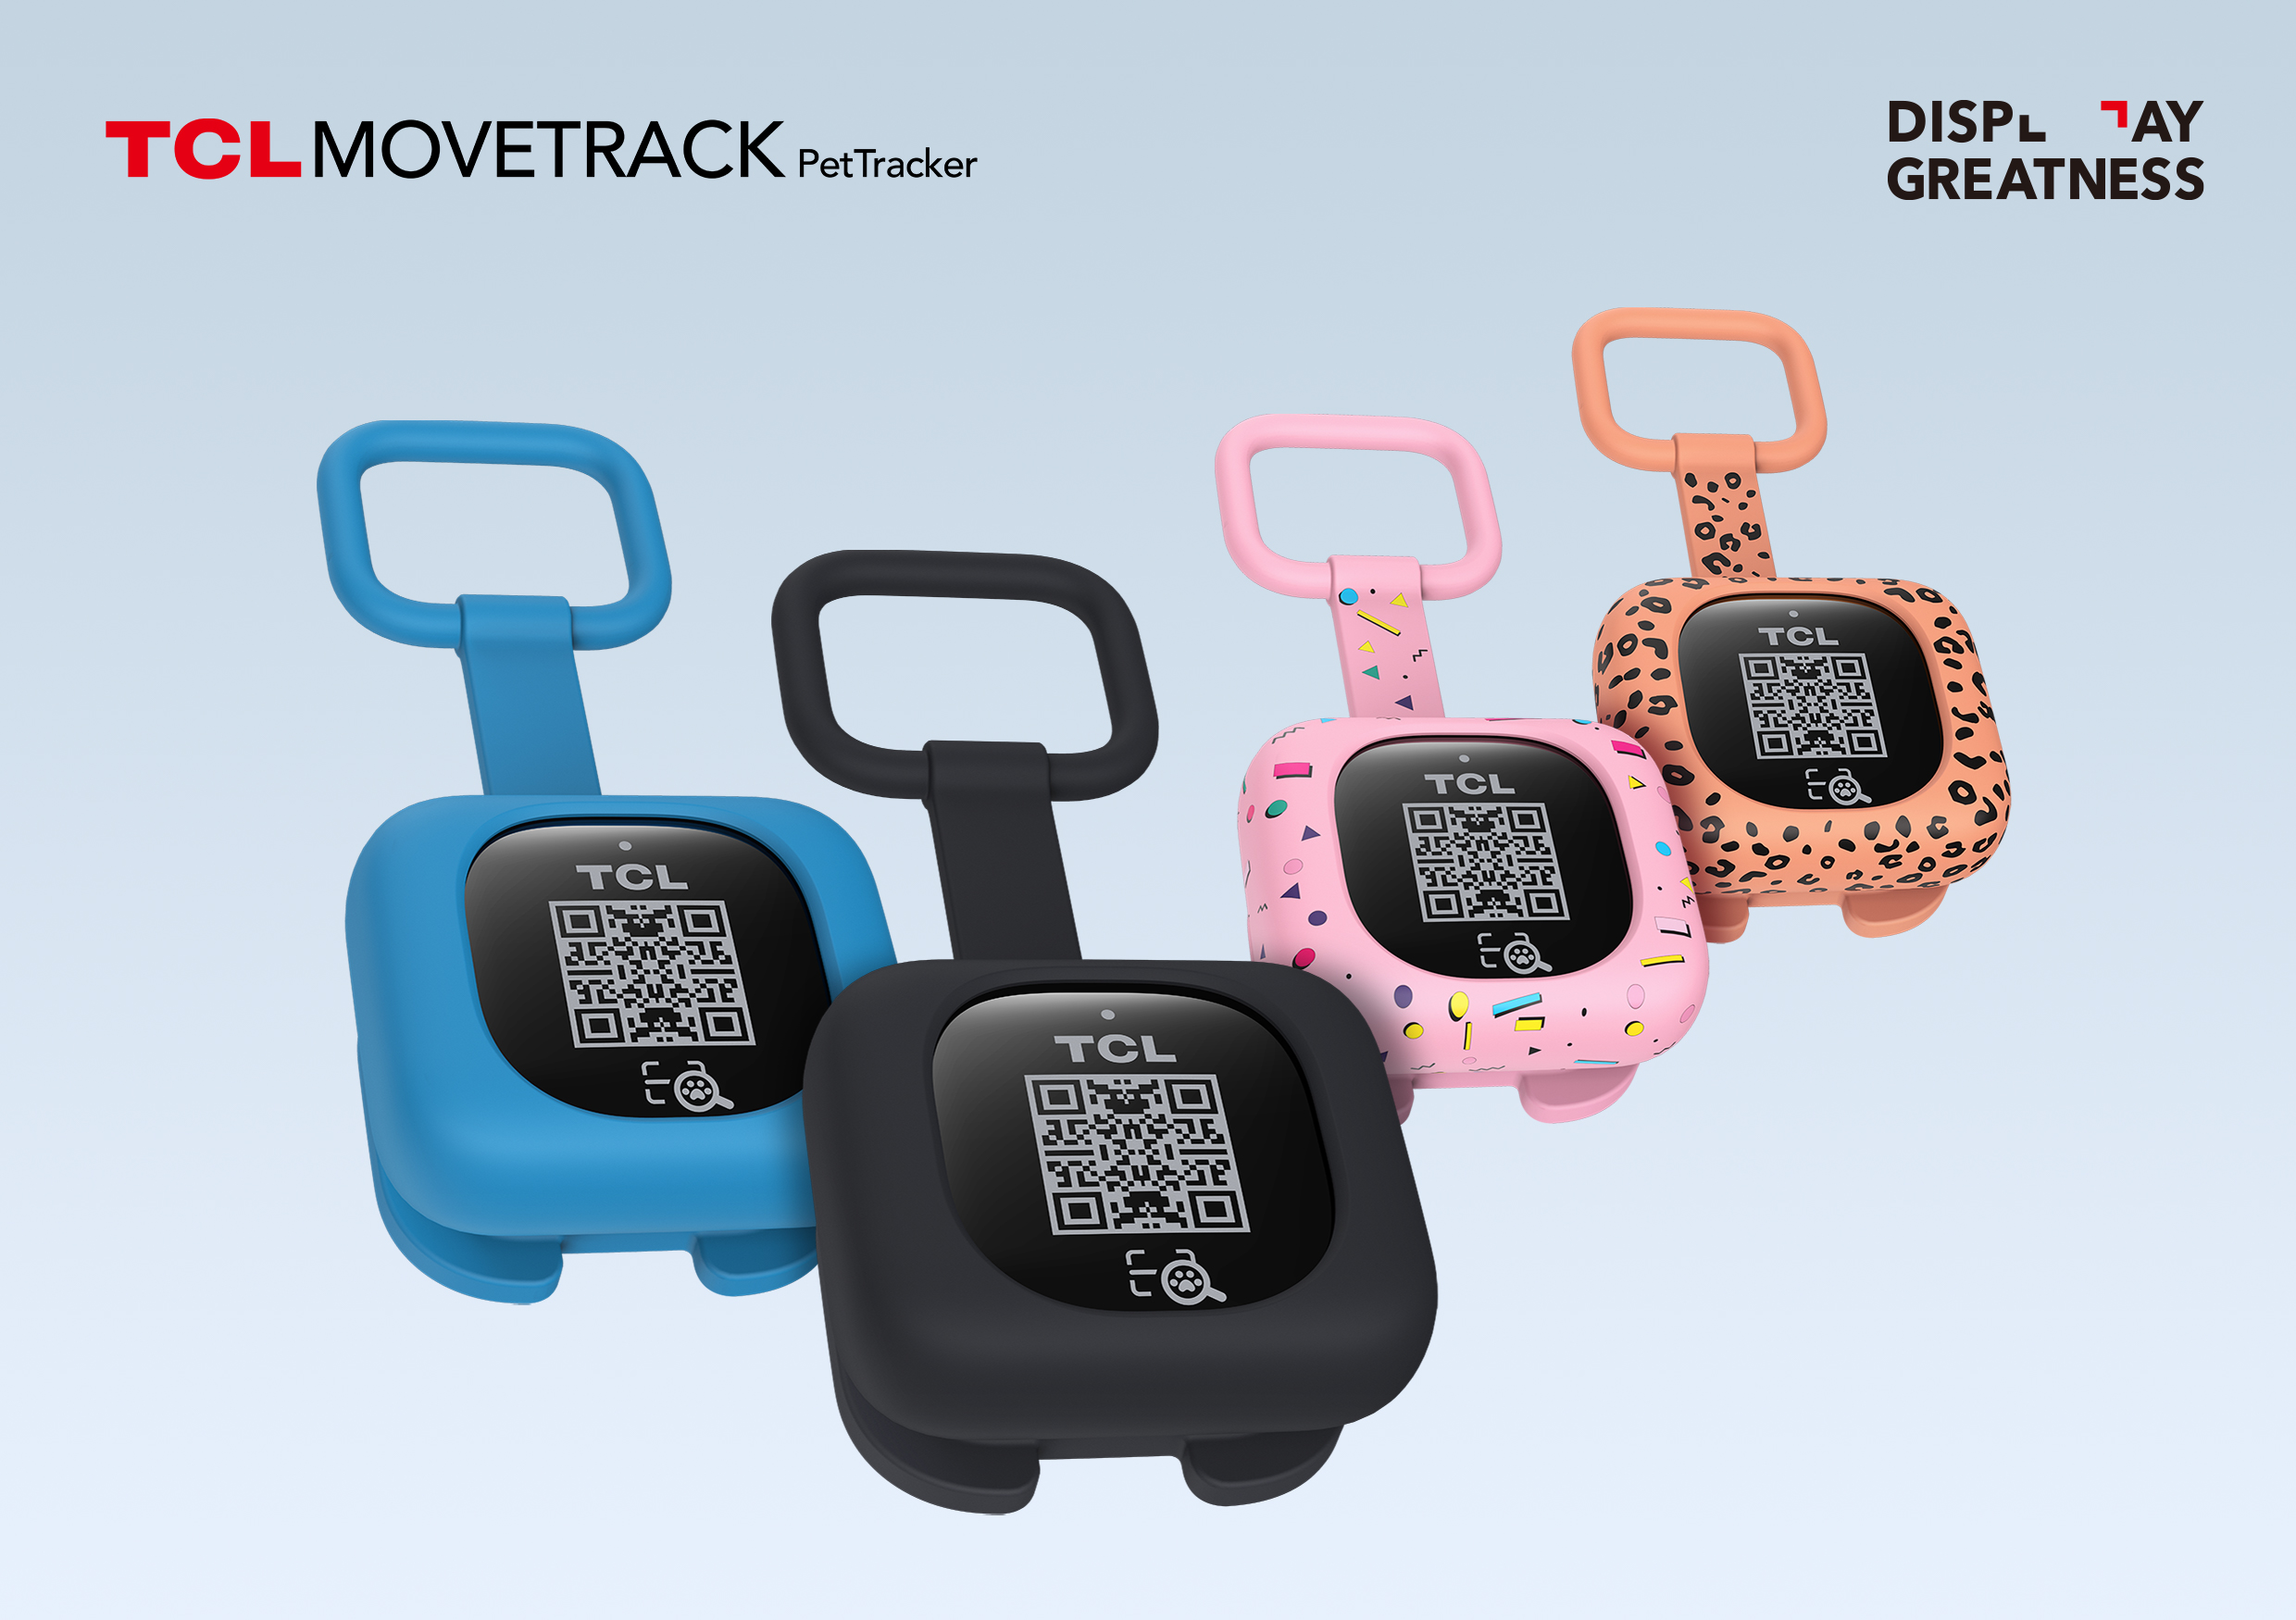 TCL MOVETRACK